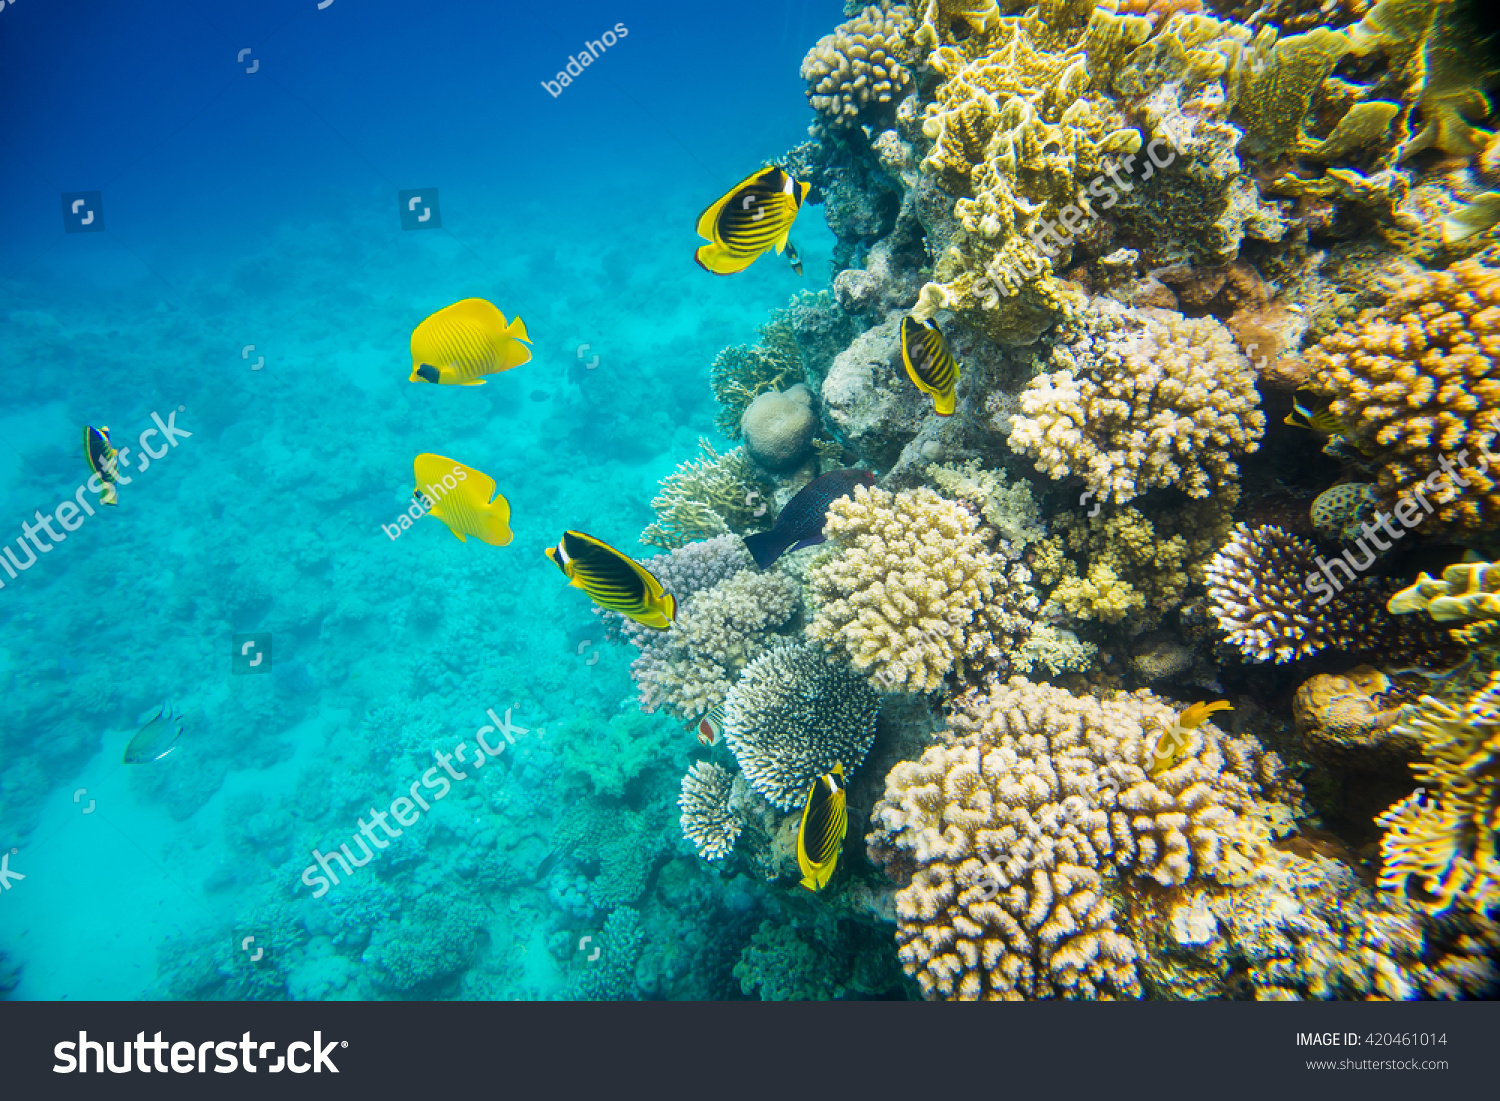 Beautiful And Diverse Coral Reef Of The Red Sea With Fish Stock Photo 420461014 : Shutterstock